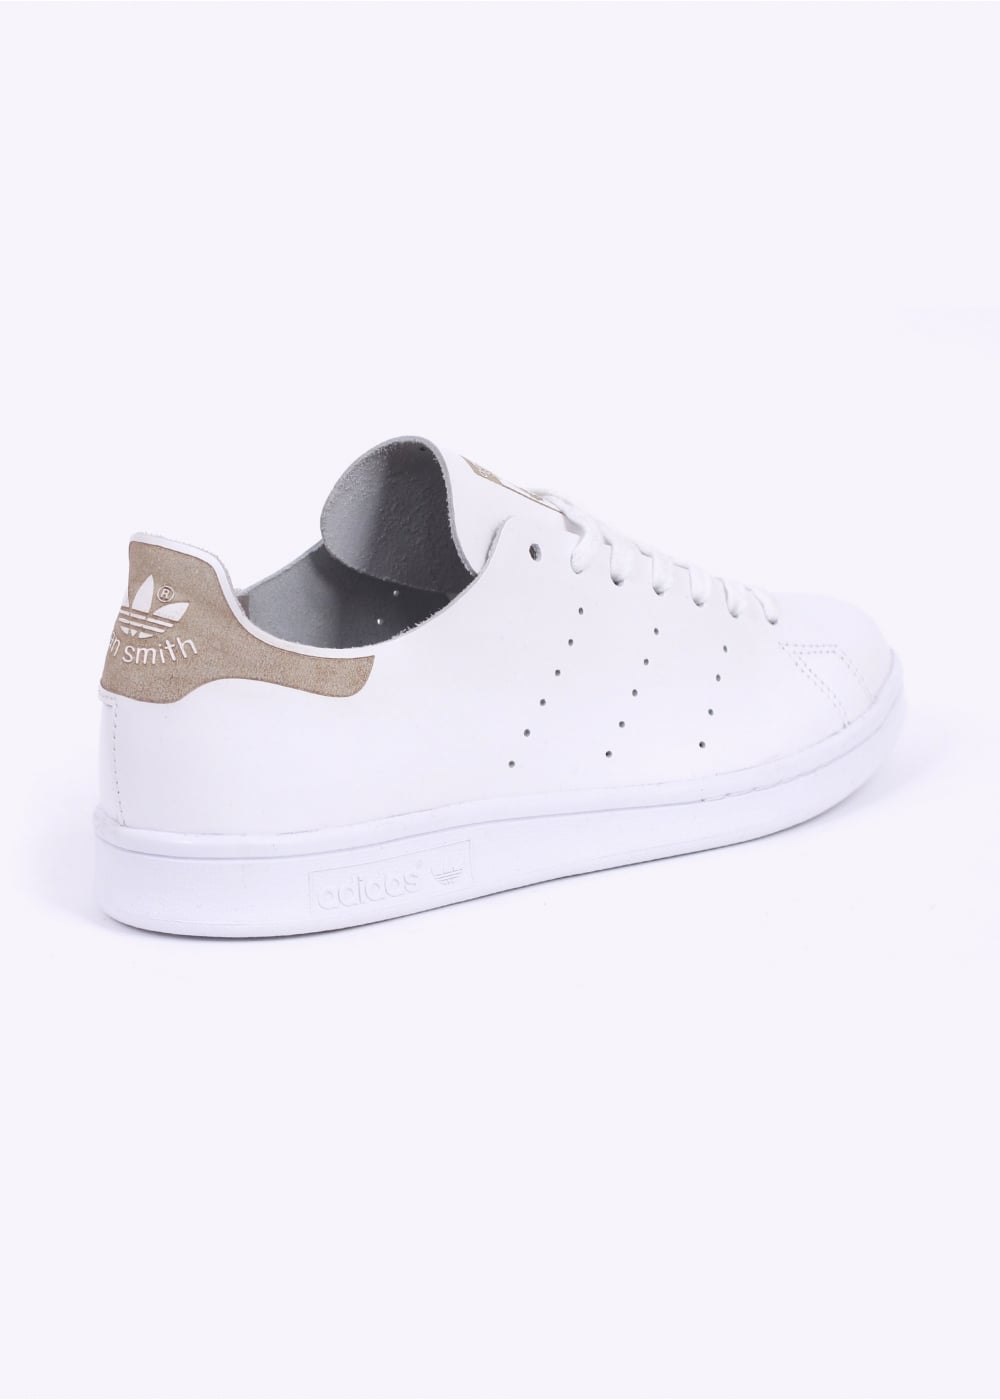 adidas Originals Footwear Stan Smith Deconstructed Trainers White Light Brown